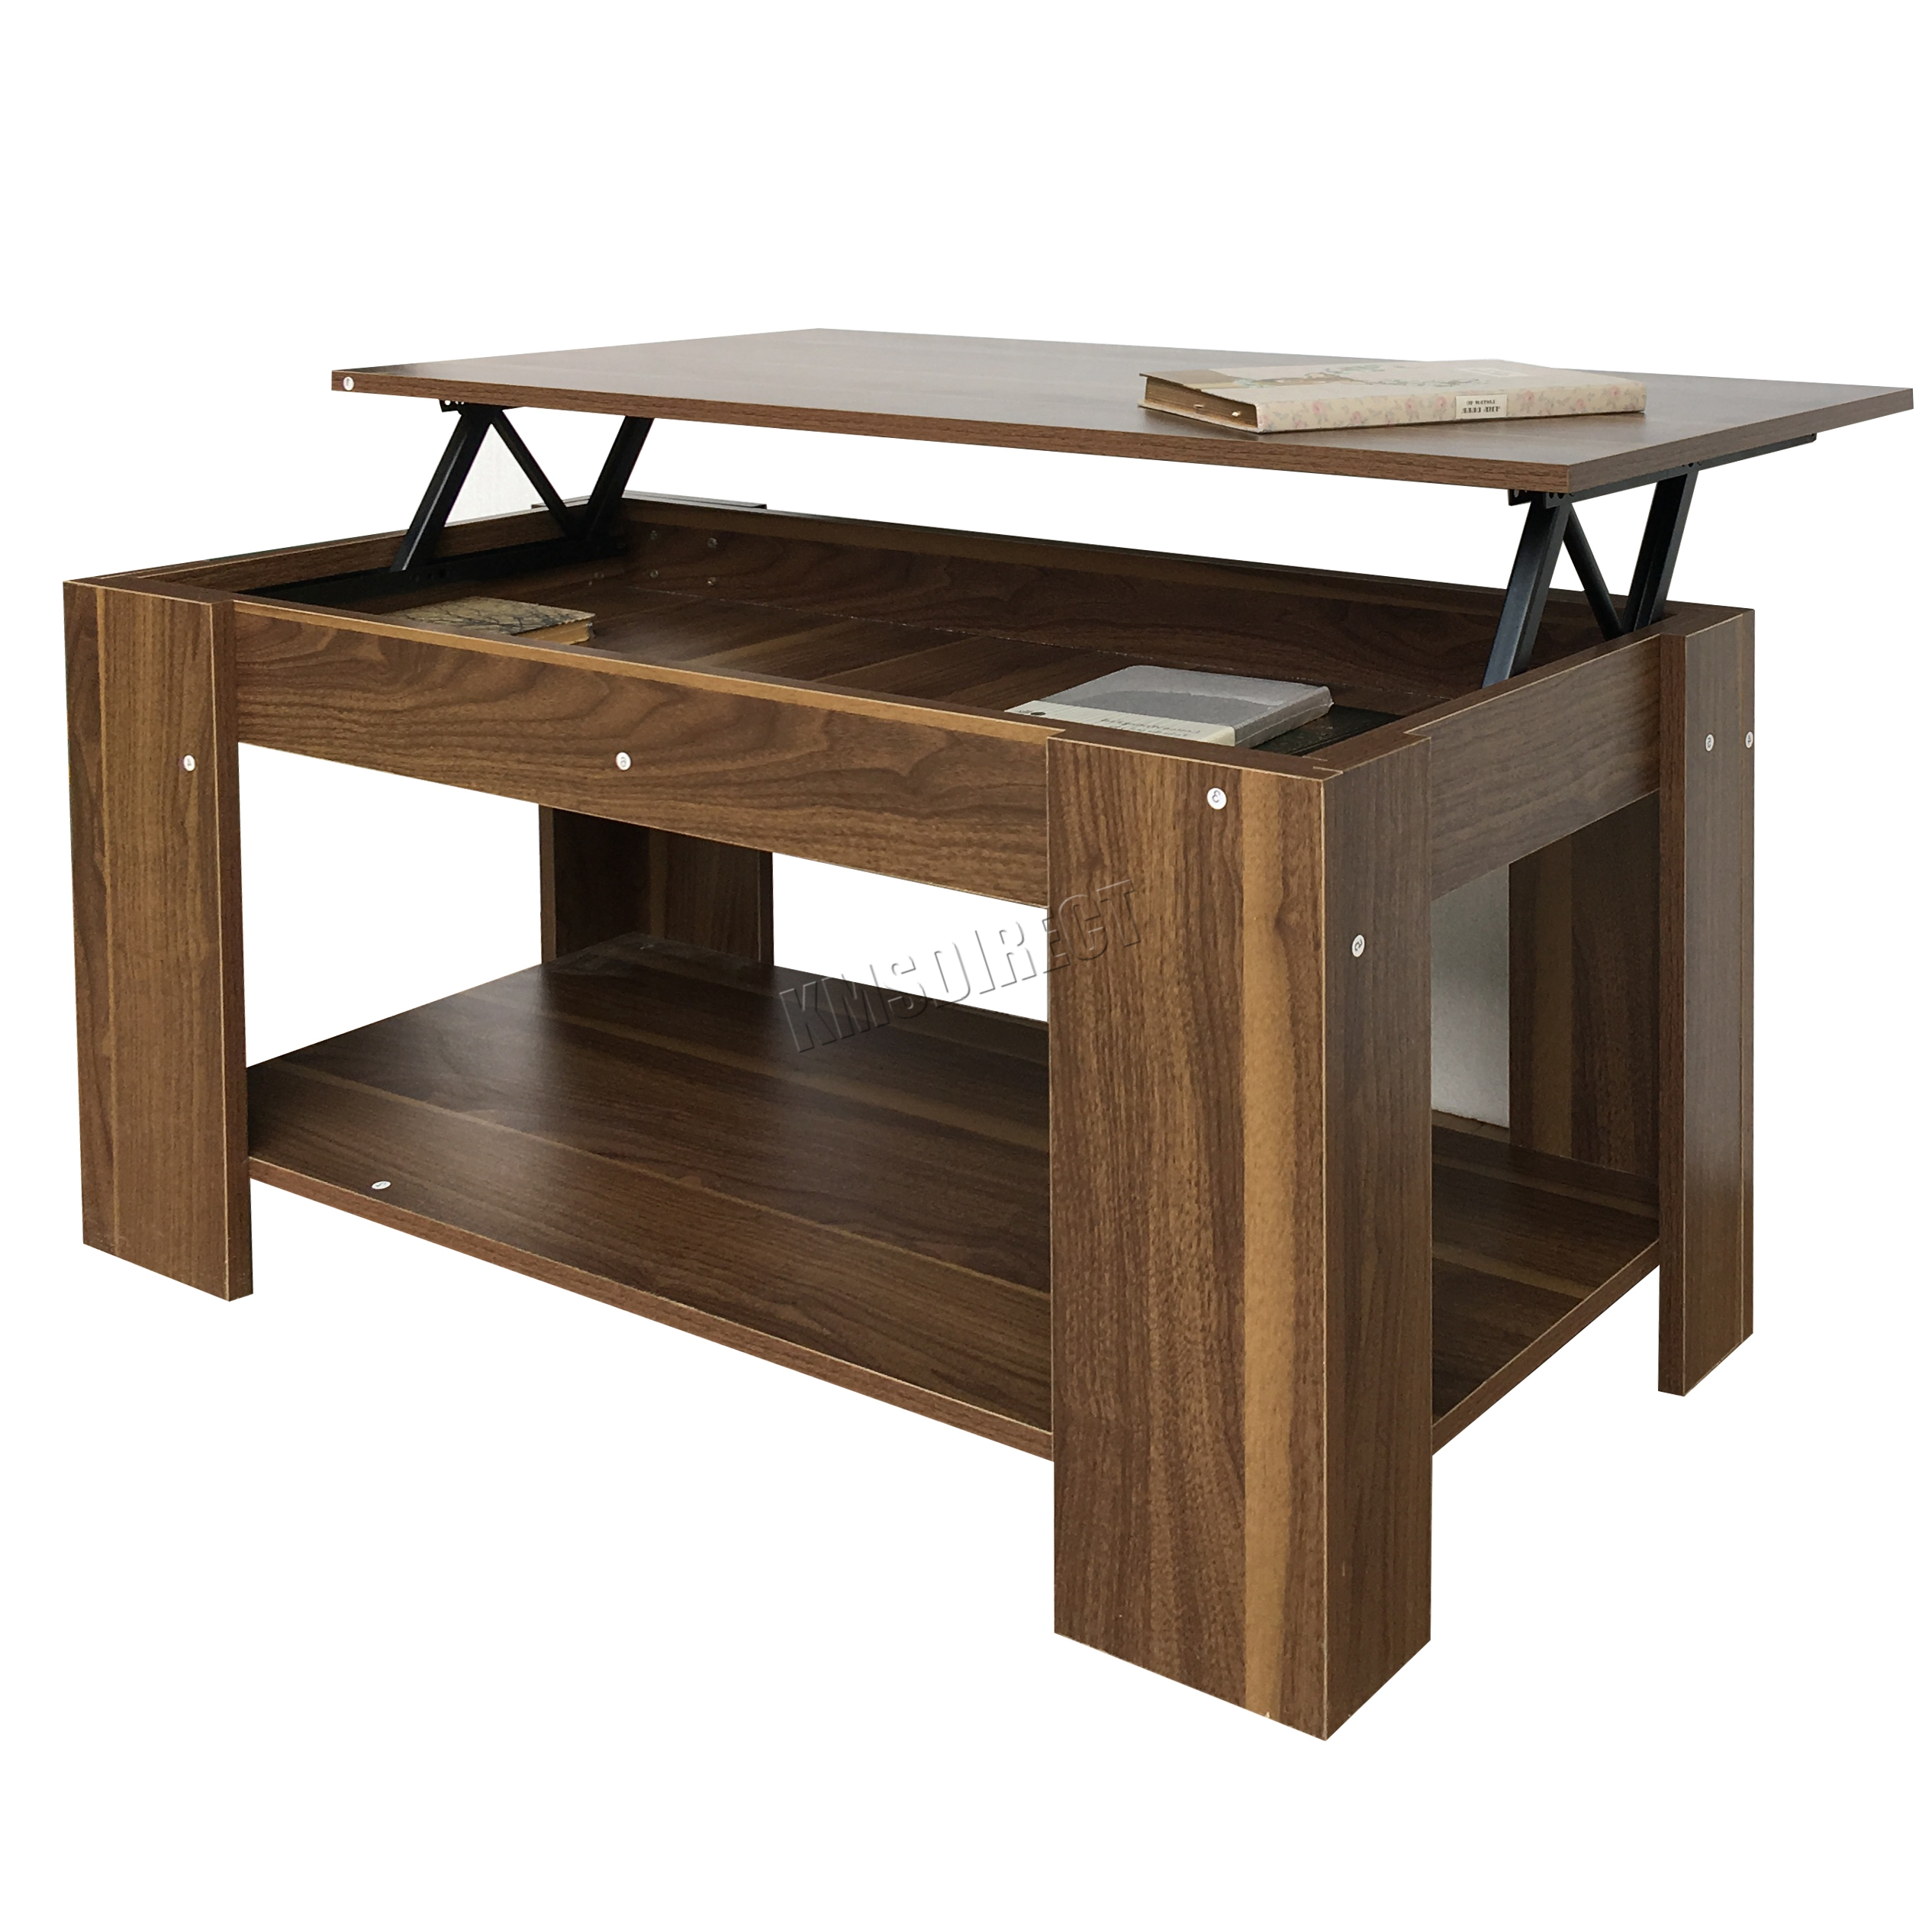 Foxhunter Lift Up Top Coffee Table With Storage Shelf Living Room Ct01 Walnut Ebay